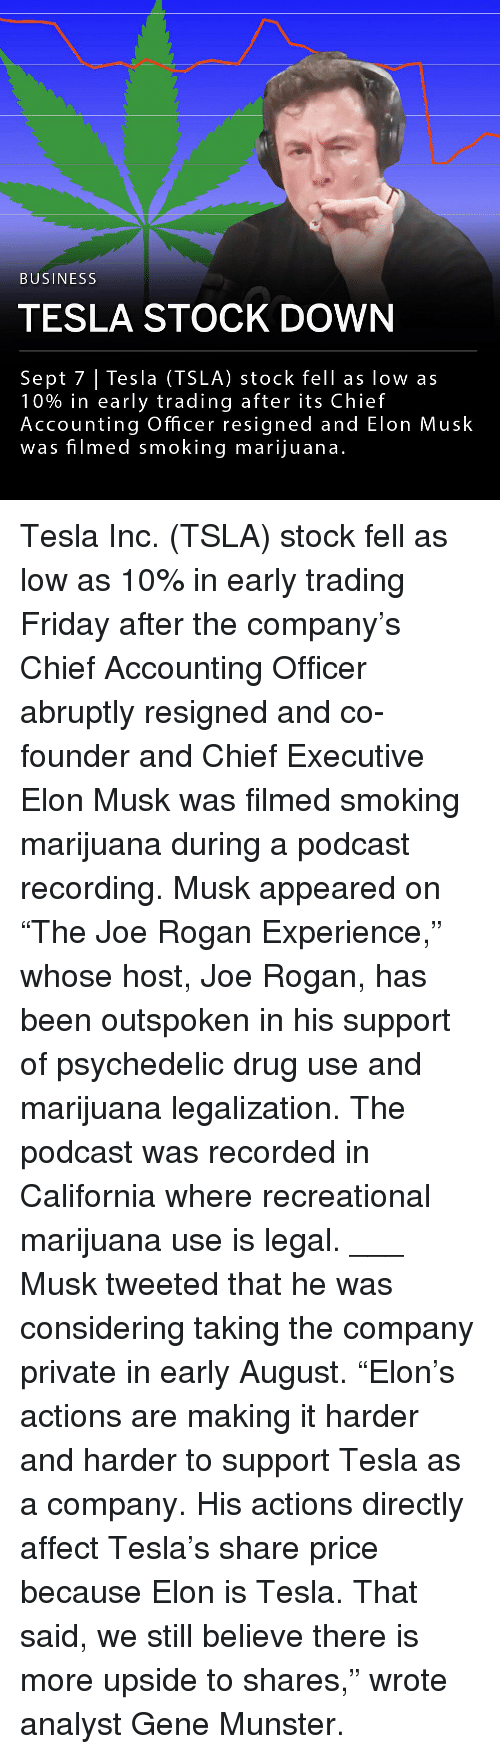 "psychedelic: BUSINESS  TESLA STOCK DOWN  Sept 7 | Tesla (TSLA) stock fell as low as  10% in early trading after its Chief  Accounting Officer resigned and Elon Musk  was filmed smoking marijuana.  US Tesla Inc. (TSLA) stock fell as low as 10% in early trading Friday after the company's Chief Accounting Officer abruptly resigned and co-founder and Chief Executive Elon Musk was filmed smoking marijuana during a podcast recording. Musk appeared on ""The Joe Rogan Experience,"" whose host, Joe Rogan, has been outspoken in his support of psychedelic drug use and marijuana legalization. The podcast was recorded in California where recreational marijuana use is legal. ___ Musk tweeted that he was considering taking the company private in early August. ""Elon's actions are making it harder and harder to support Tesla as a company. His actions directly affect Tesla's share price because Elon is Tesla. That said, we still believe there is more upside to shares,"" wrote analyst Gene Munster."